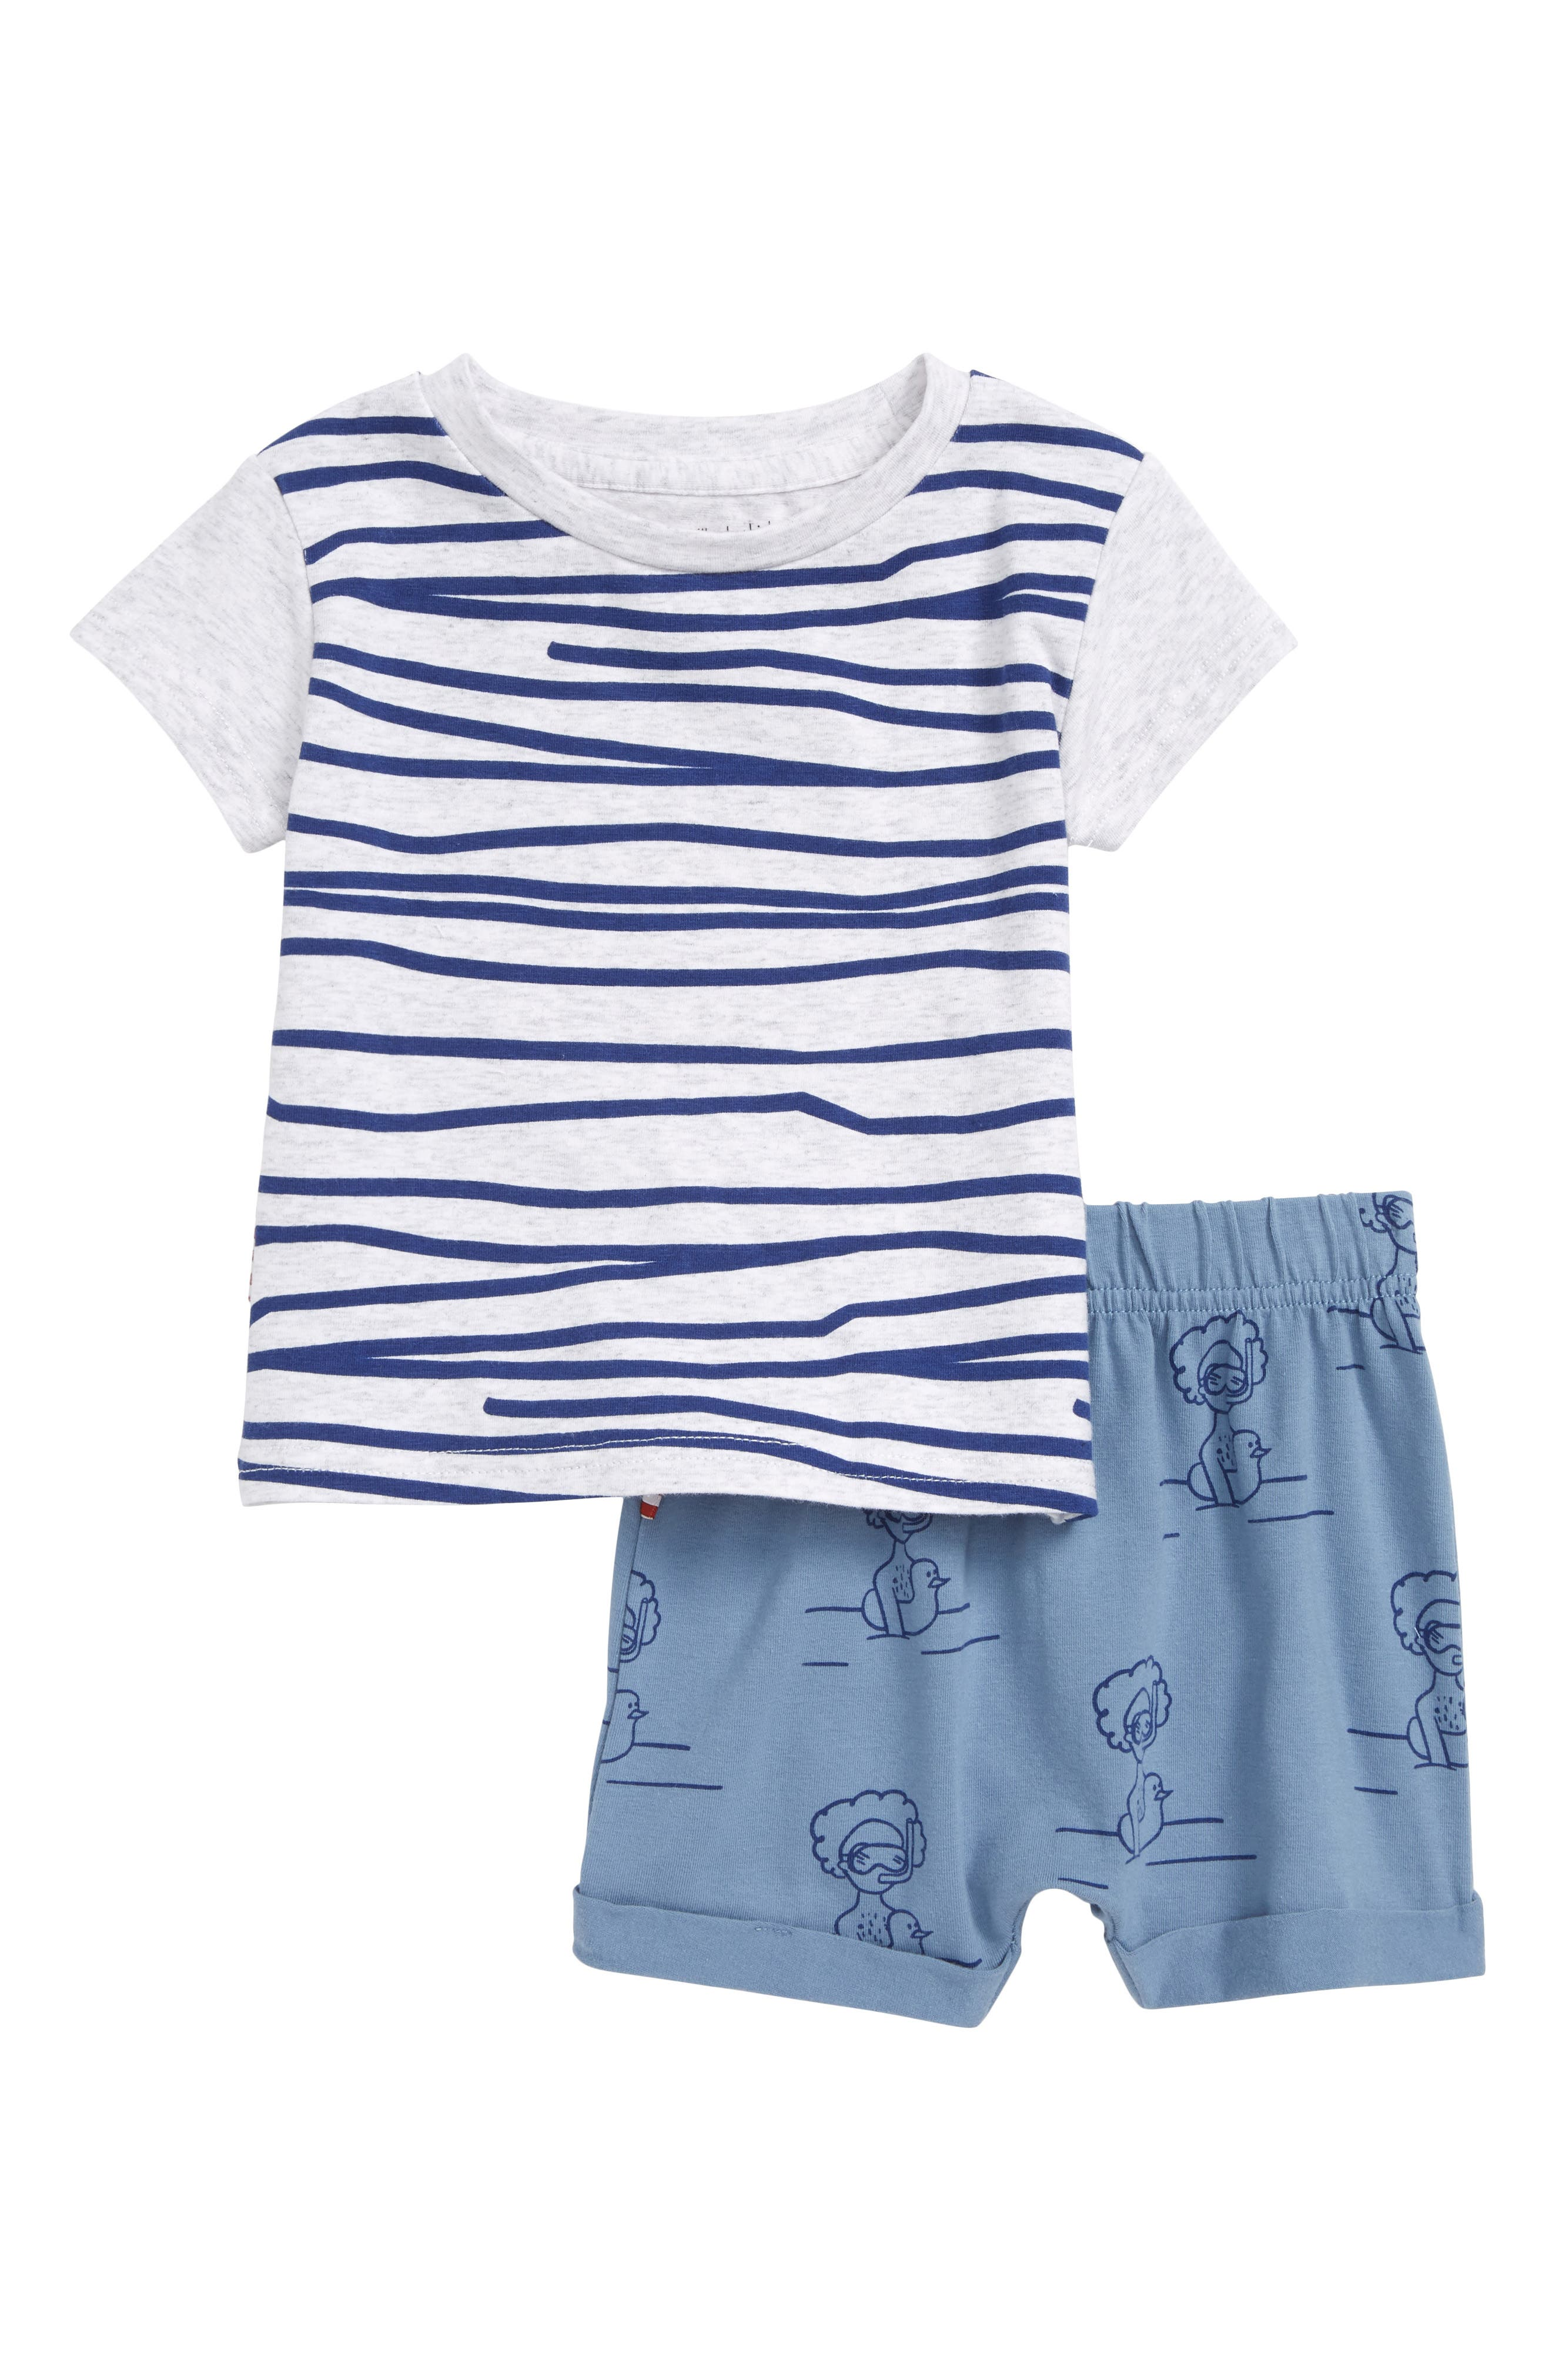 Stripe Tee & Print Shorts Set,                             Main thumbnail 1, color,                             Grey/ Blue